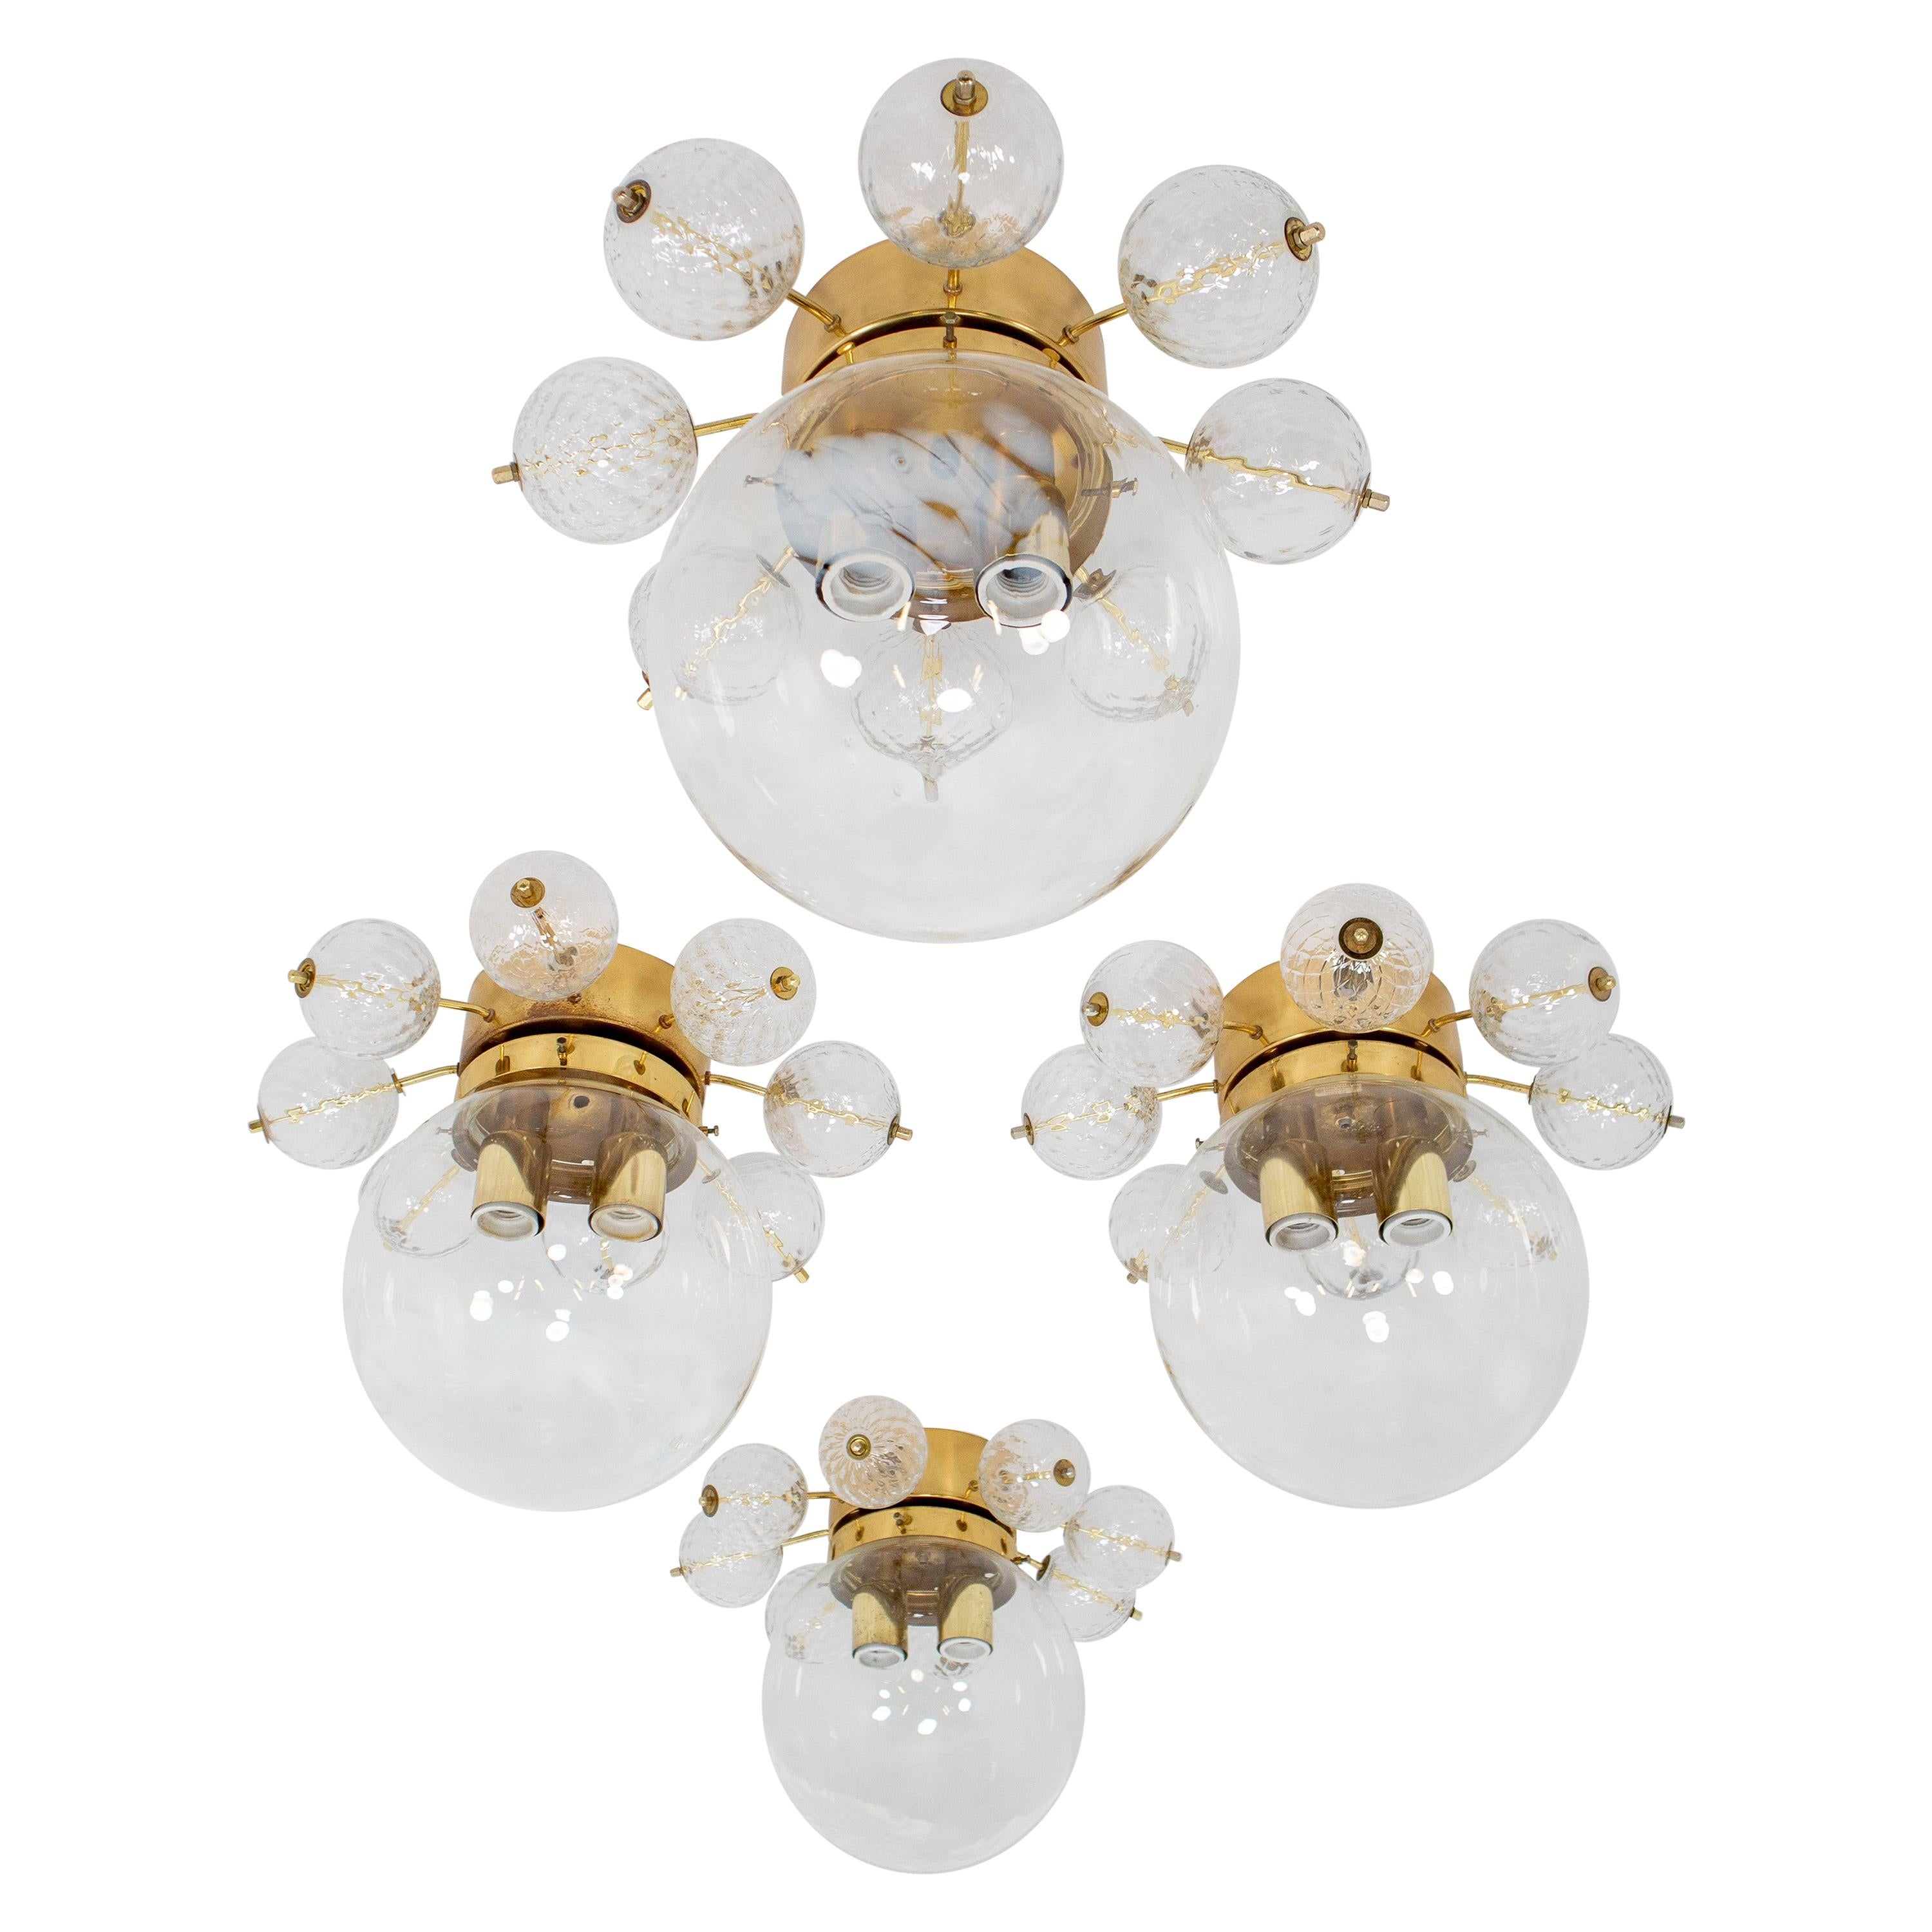 Large Midcentury Brass Ceiling Lamp-Chandelier with Hand Blown Art-Glass, 1960s